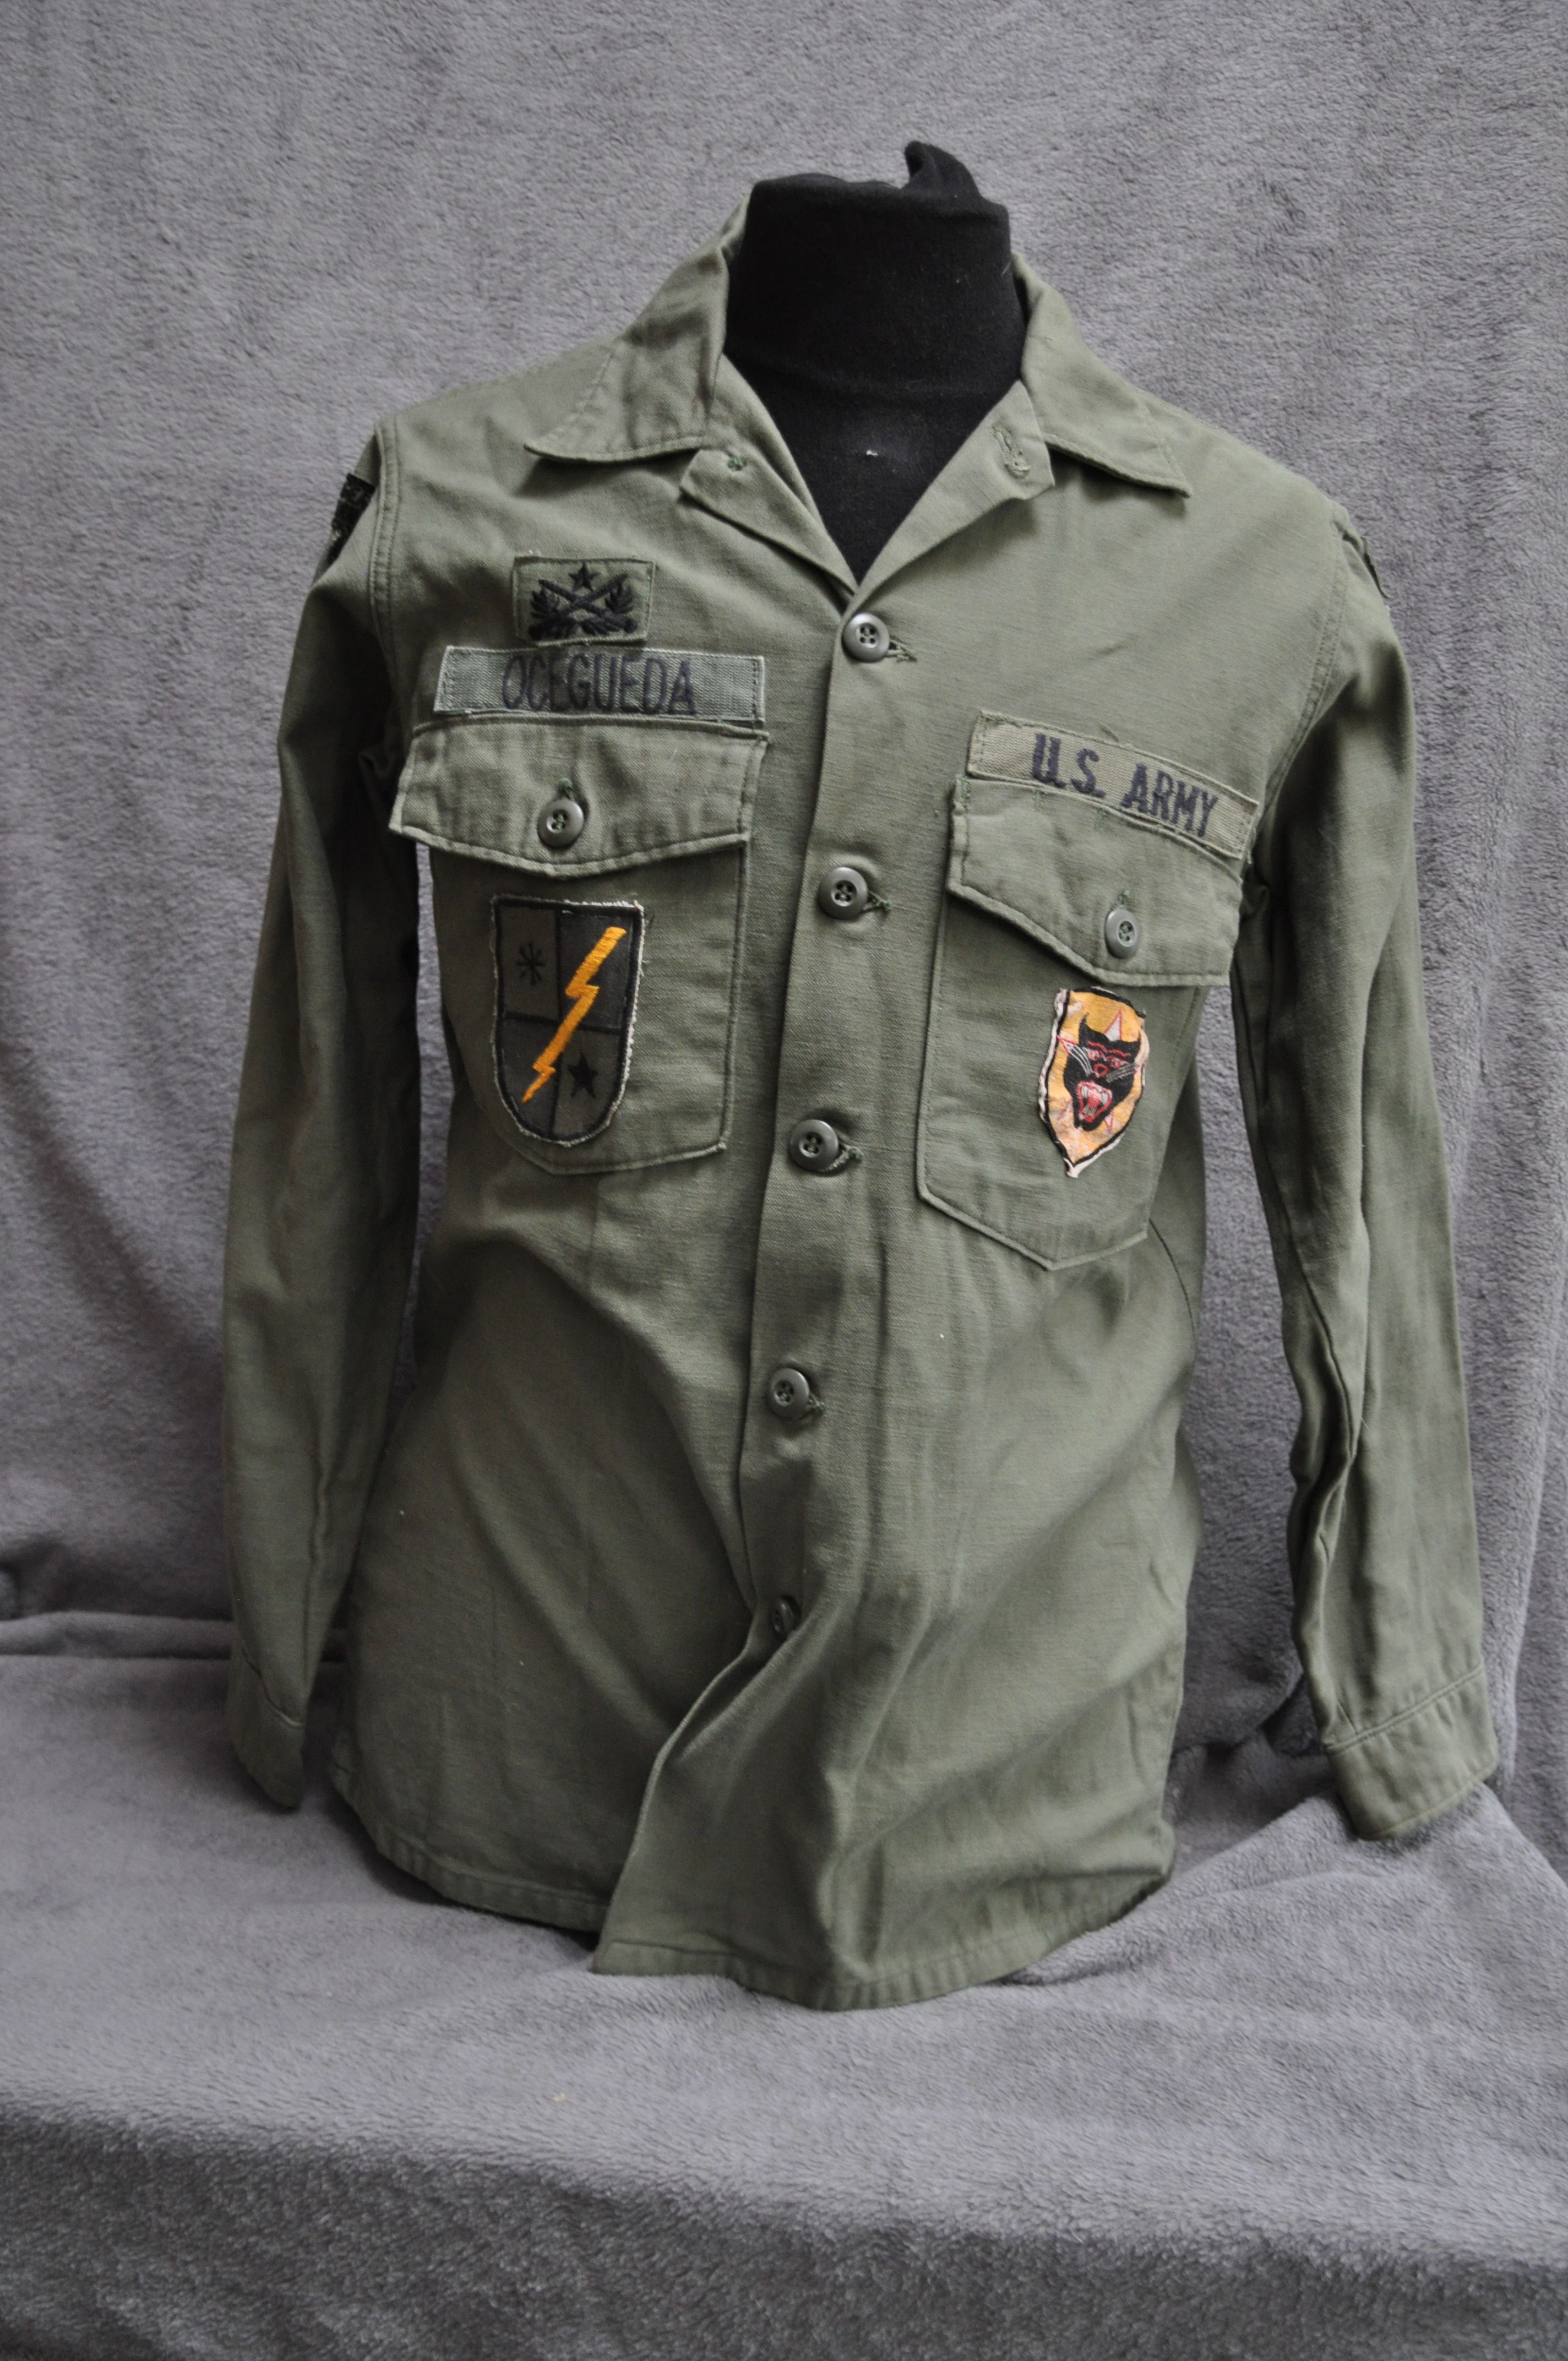 ec8bf6f5993 75th Rangers shirt with all in country made patches. US advisor ARVN rangers .